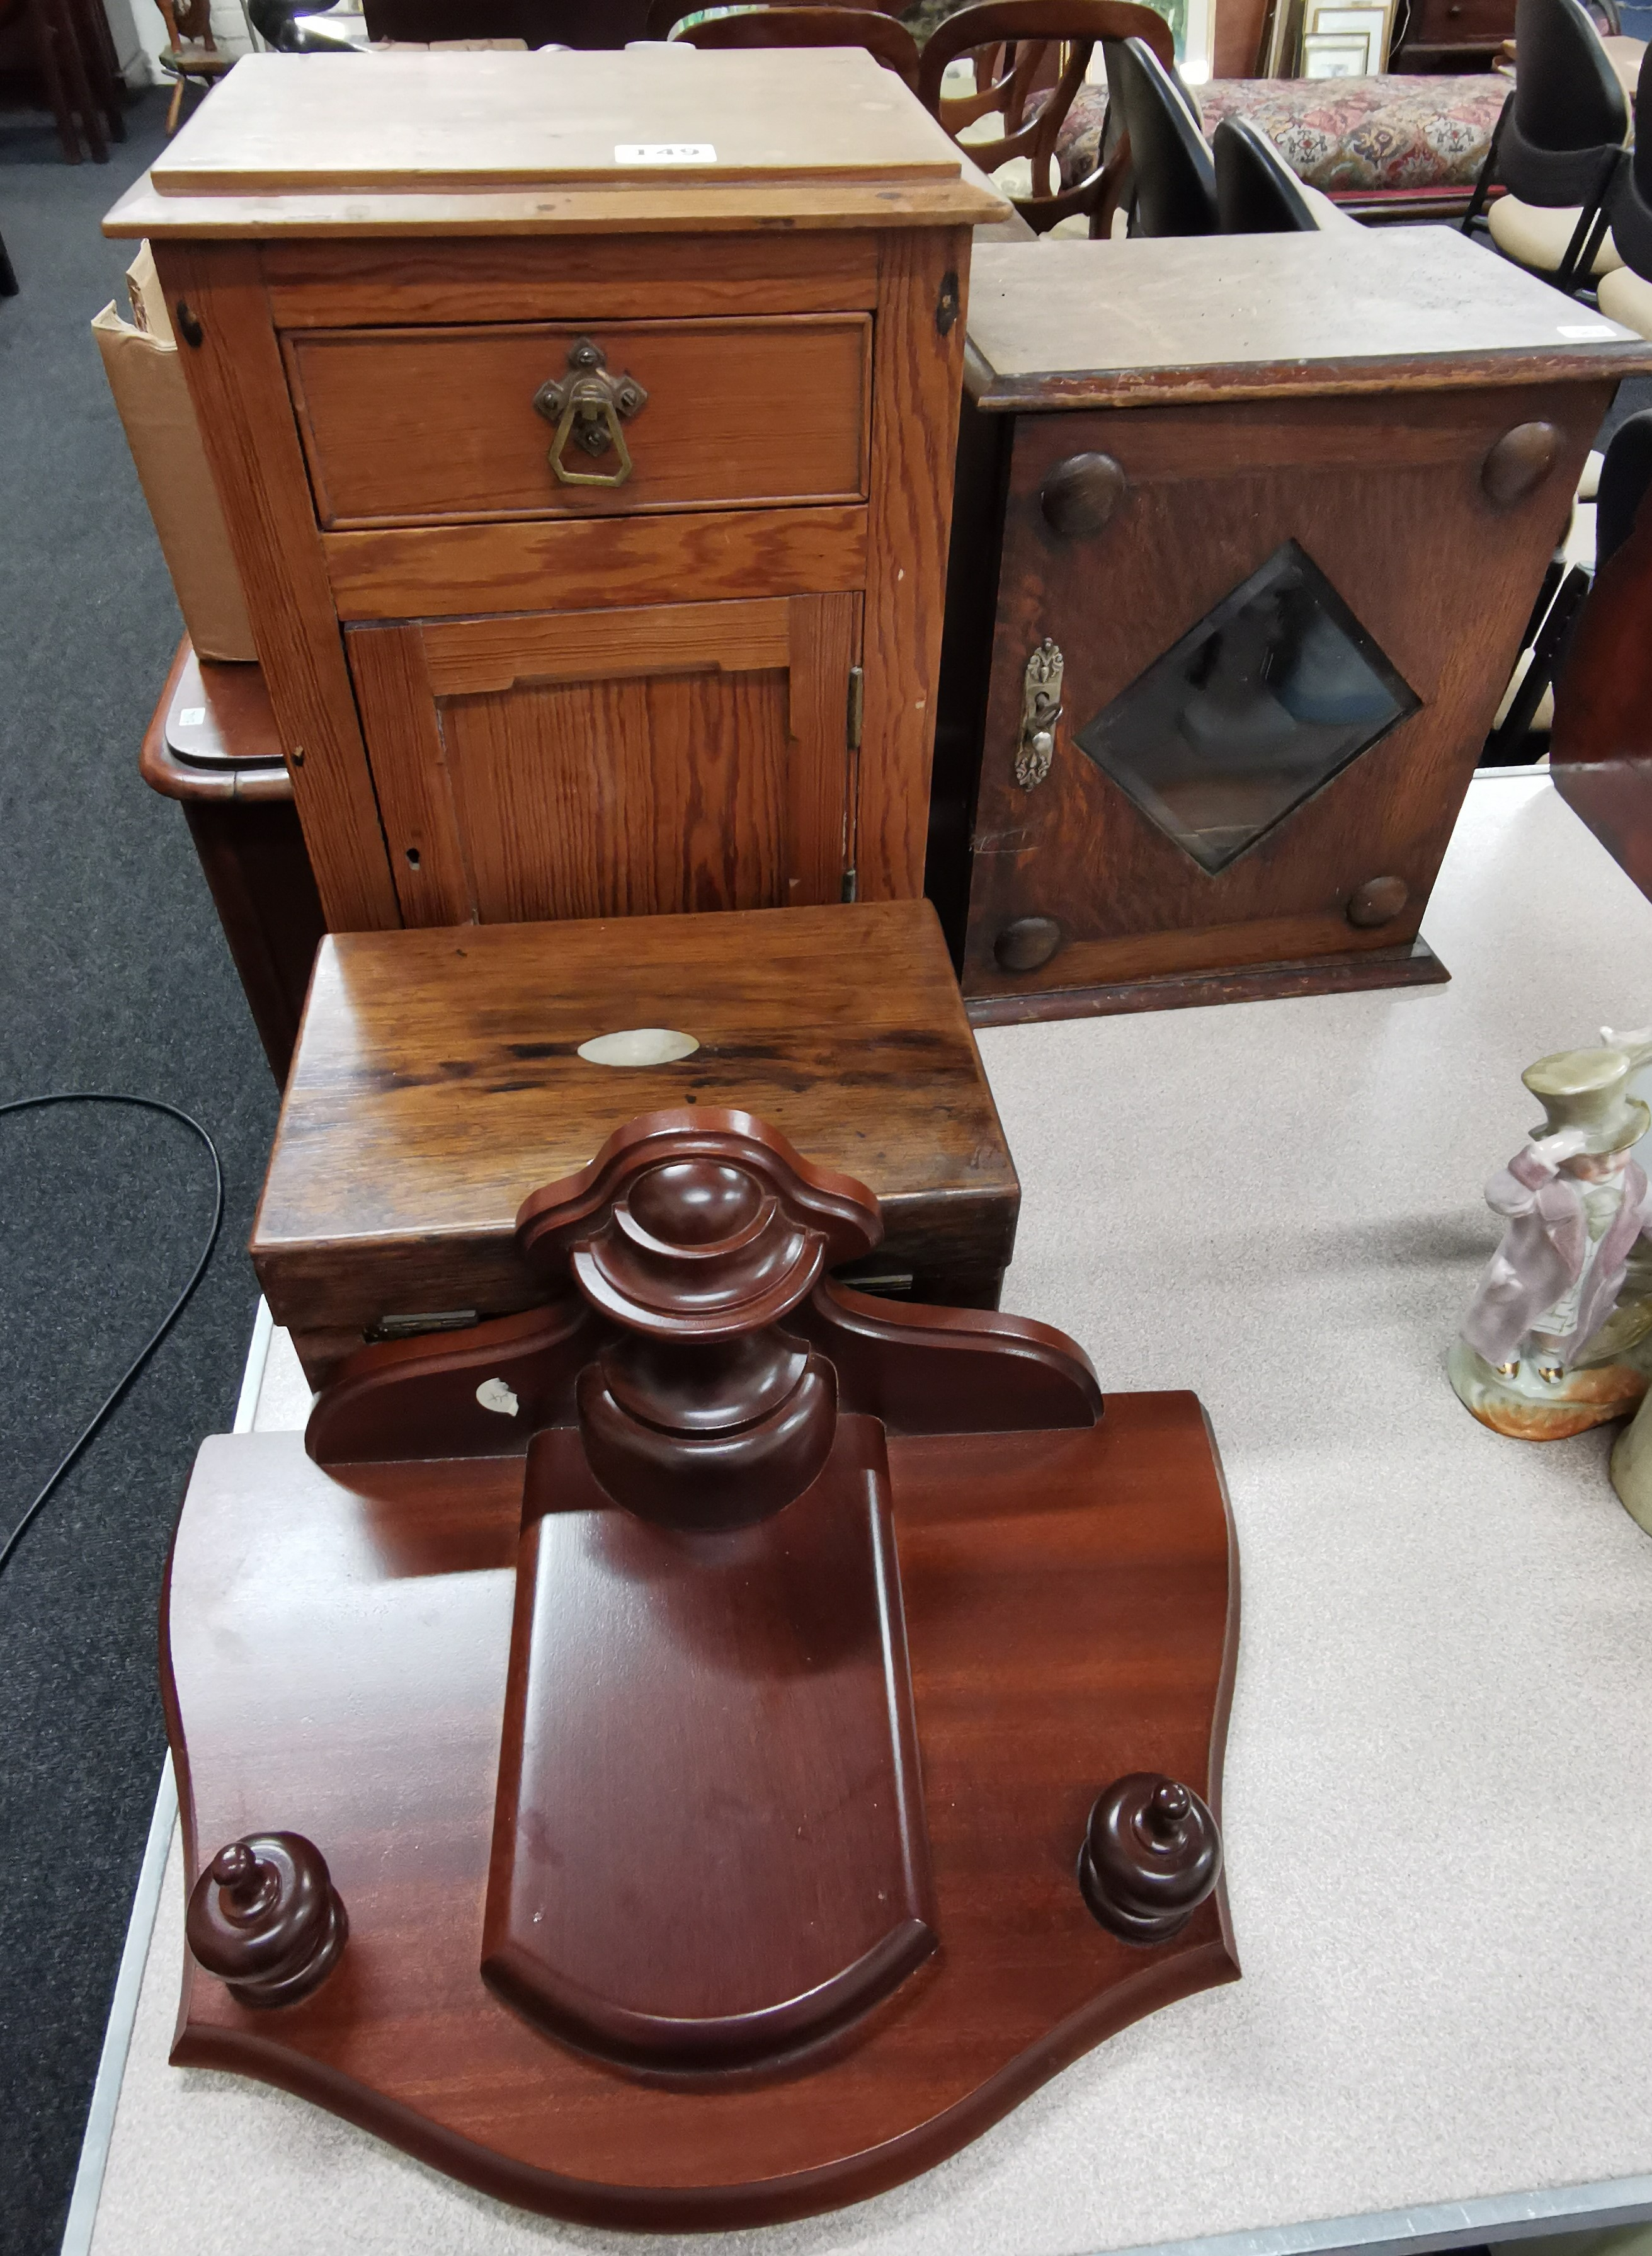 Lot 149 - 2 SMALL ANTIQUE CUPBOARDS, PLINTH & BOX